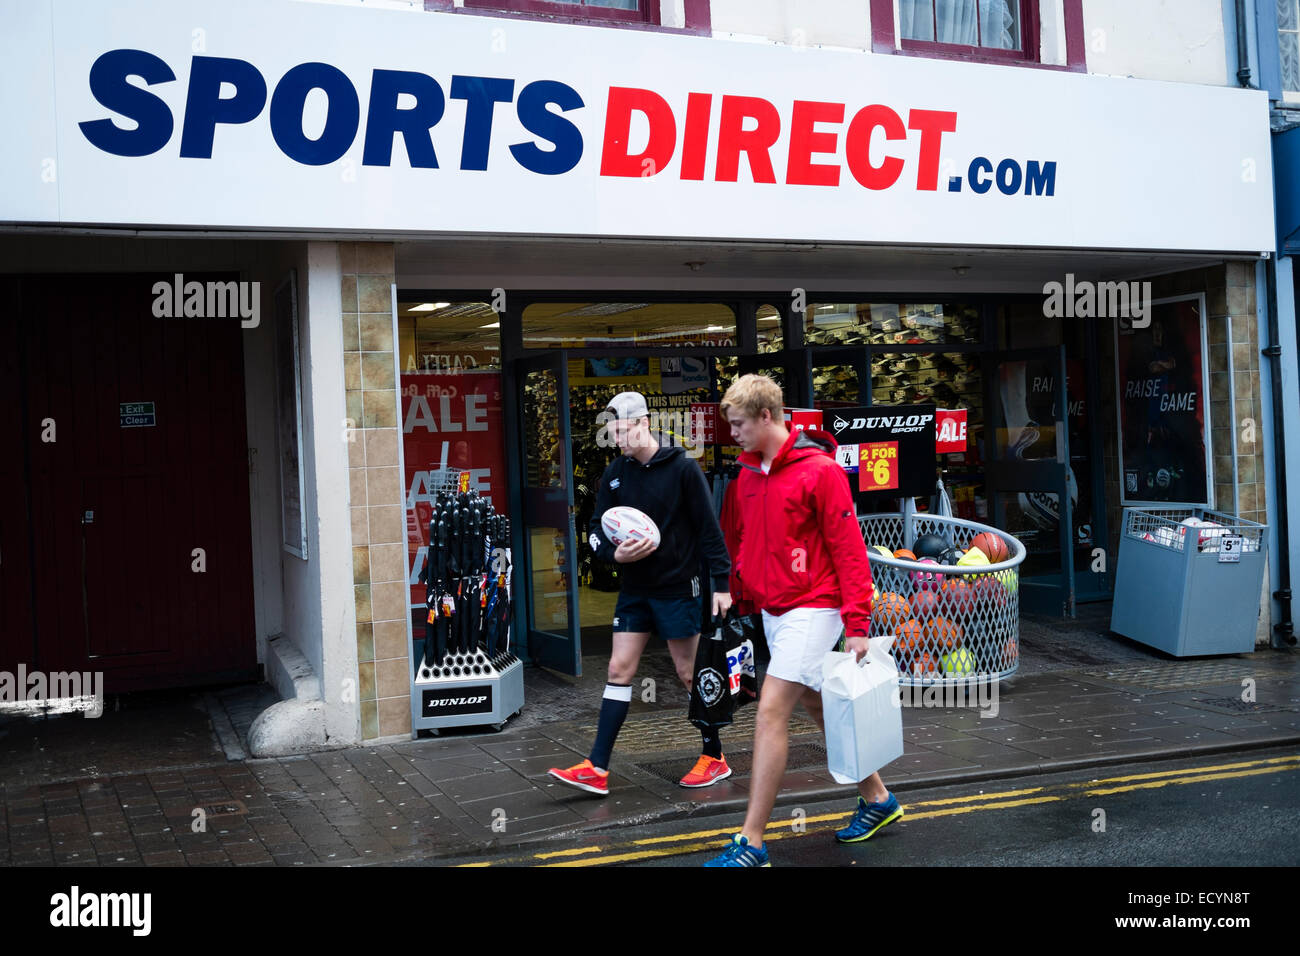 Sports Direct Discount Codes & Voucher Codes for Sale Discount Verified! 59 used today Check the best discounts for this week and be amazed by the price cuts! ALL STOCK MUST GO - Sports Direct Clearance.